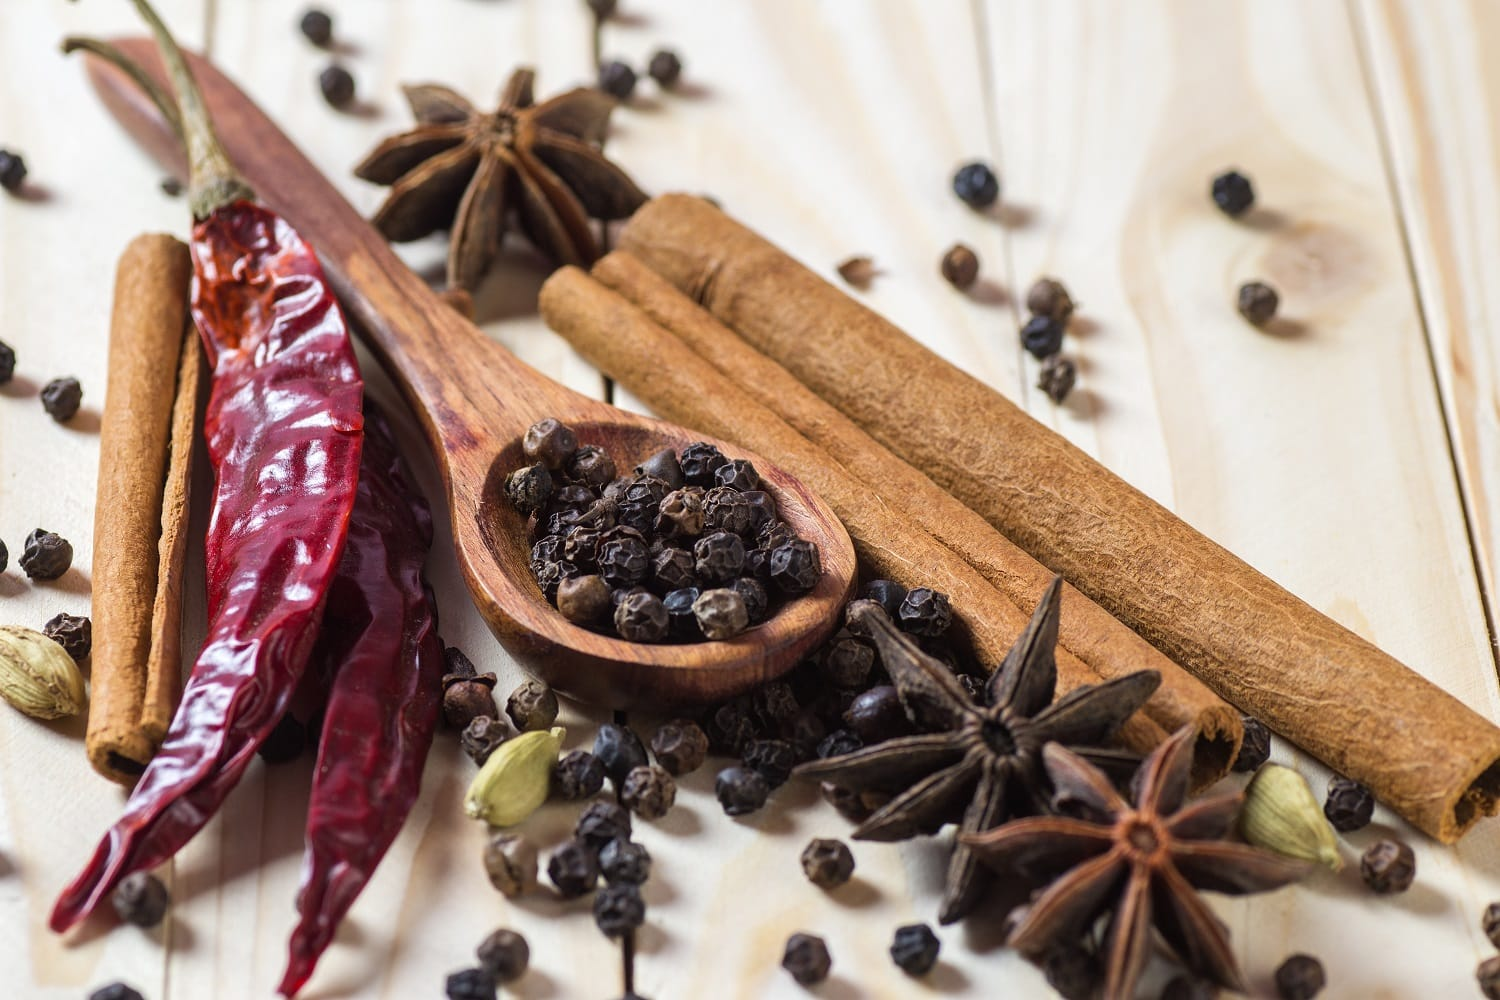 spices herbs food cuisine ingredients cinnamon sticks anise stars black peppercorns chili cardamom cloves wooden surface